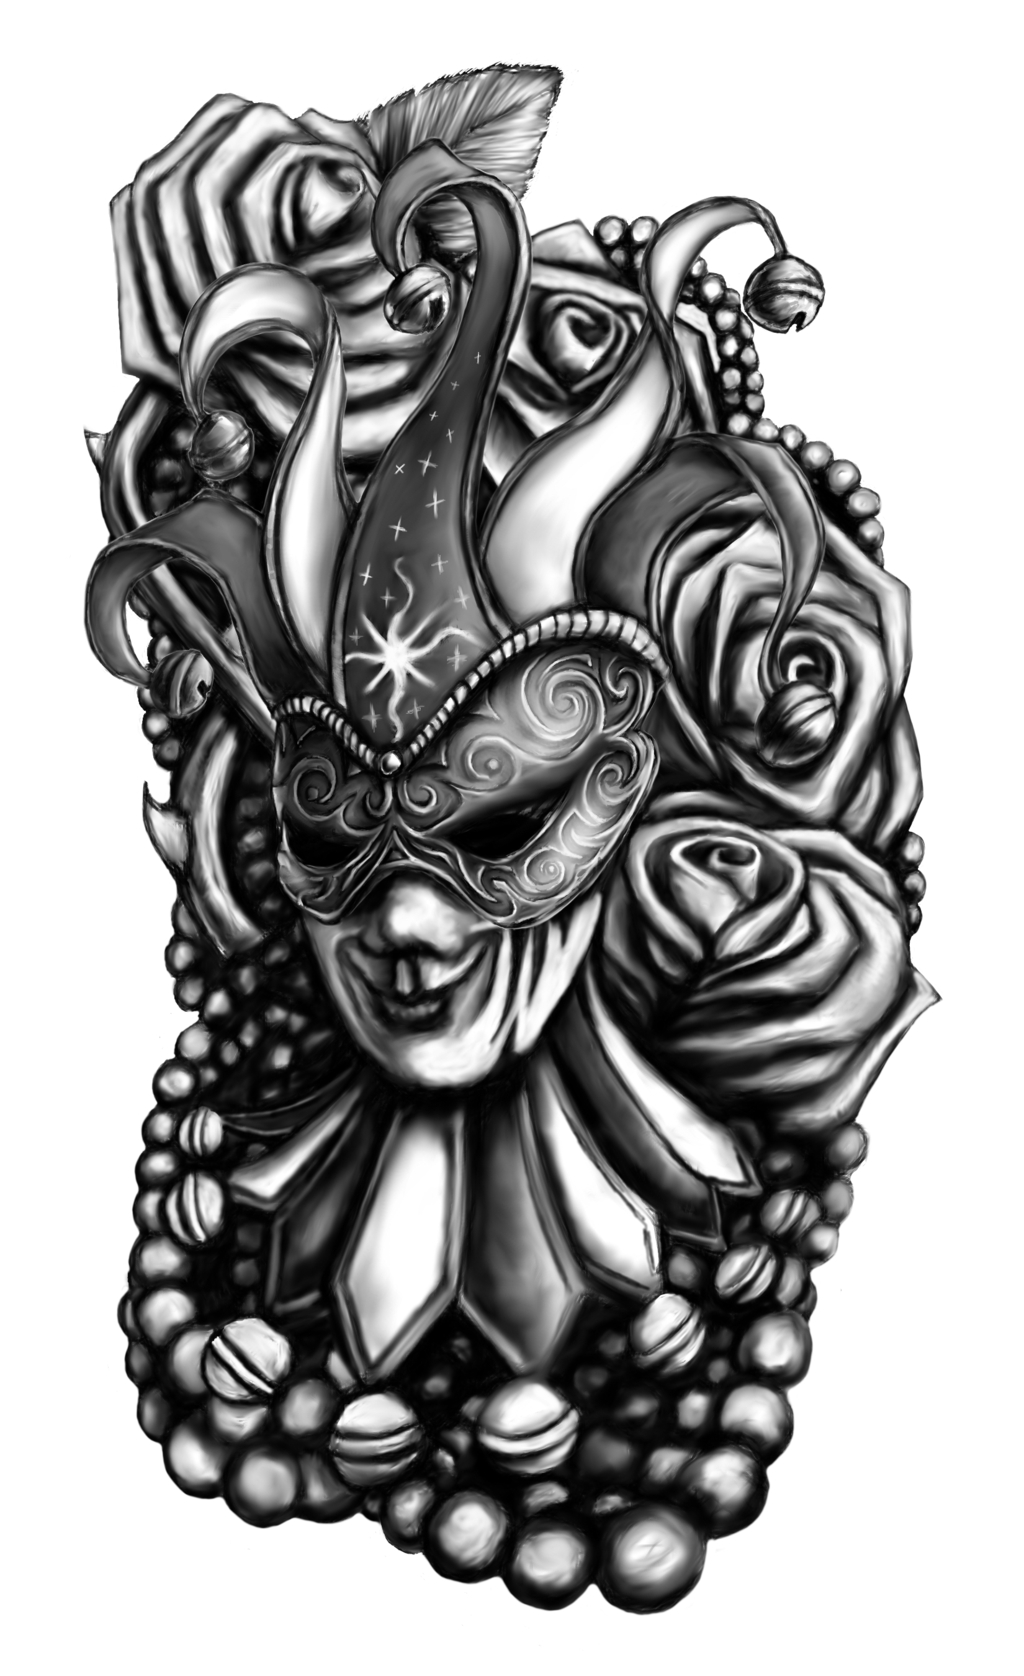 10 Most Recommended Black And Grey Tattoo Ideas black and grey mardi gras with roses tattoo designlewis brown 2020